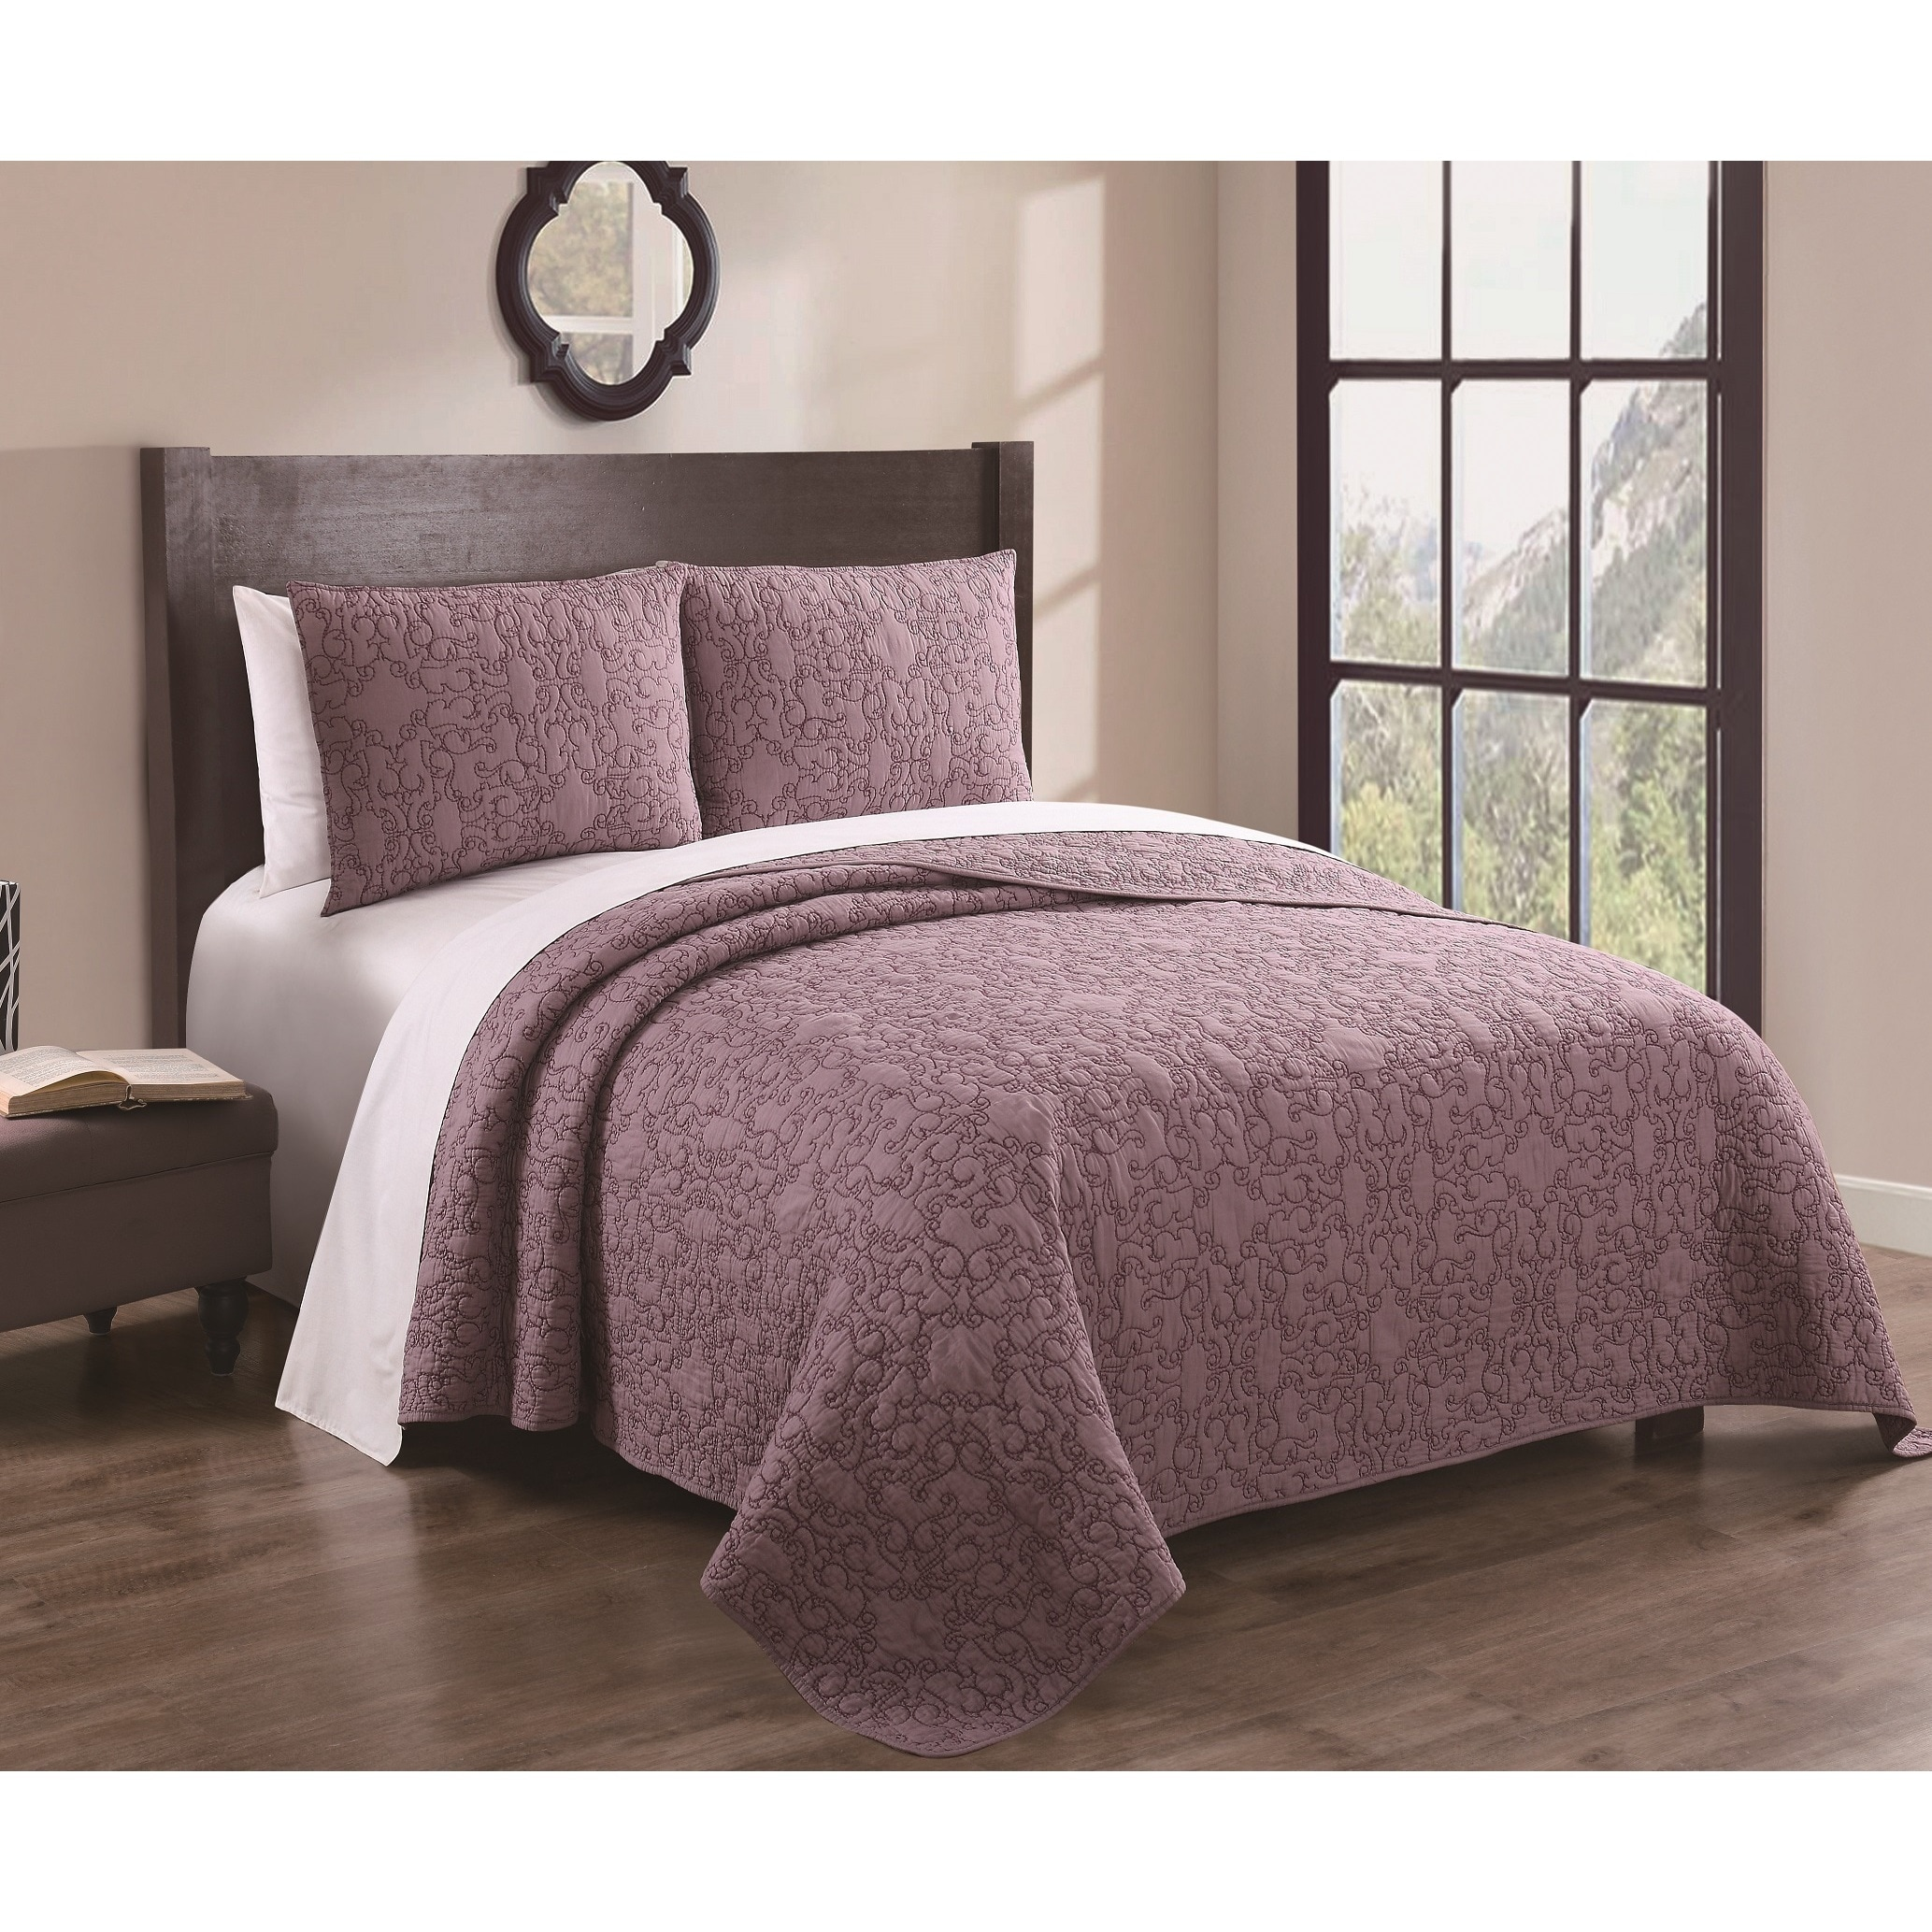 set reversible sale solid orders over overstock baltic product free piece shipping bedding quilt on plum bath